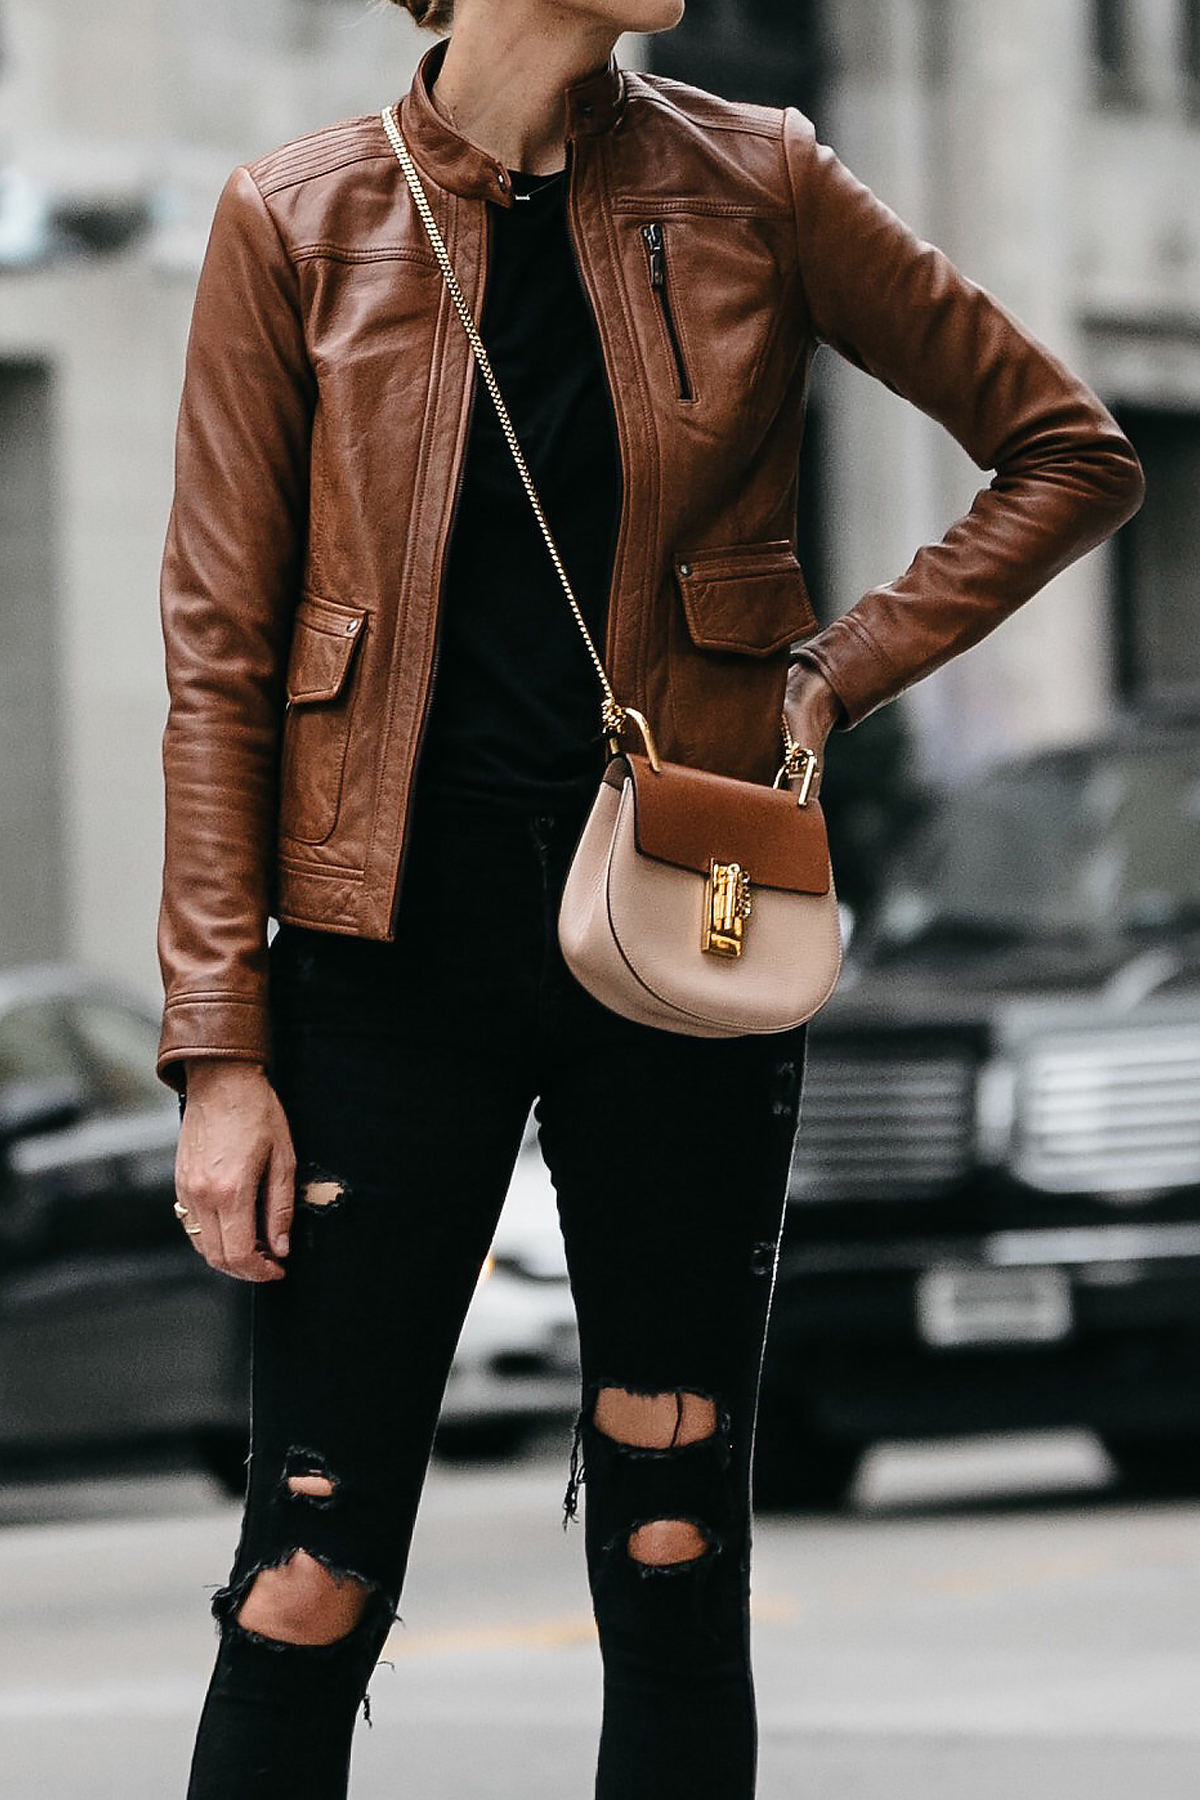 Tan Leather Moto Jacket Black Ripped Skinny Jeans Outfit Chloe Drew Handbag Fashion Jackson Dallas Blogger Fashion Blogger Street Style